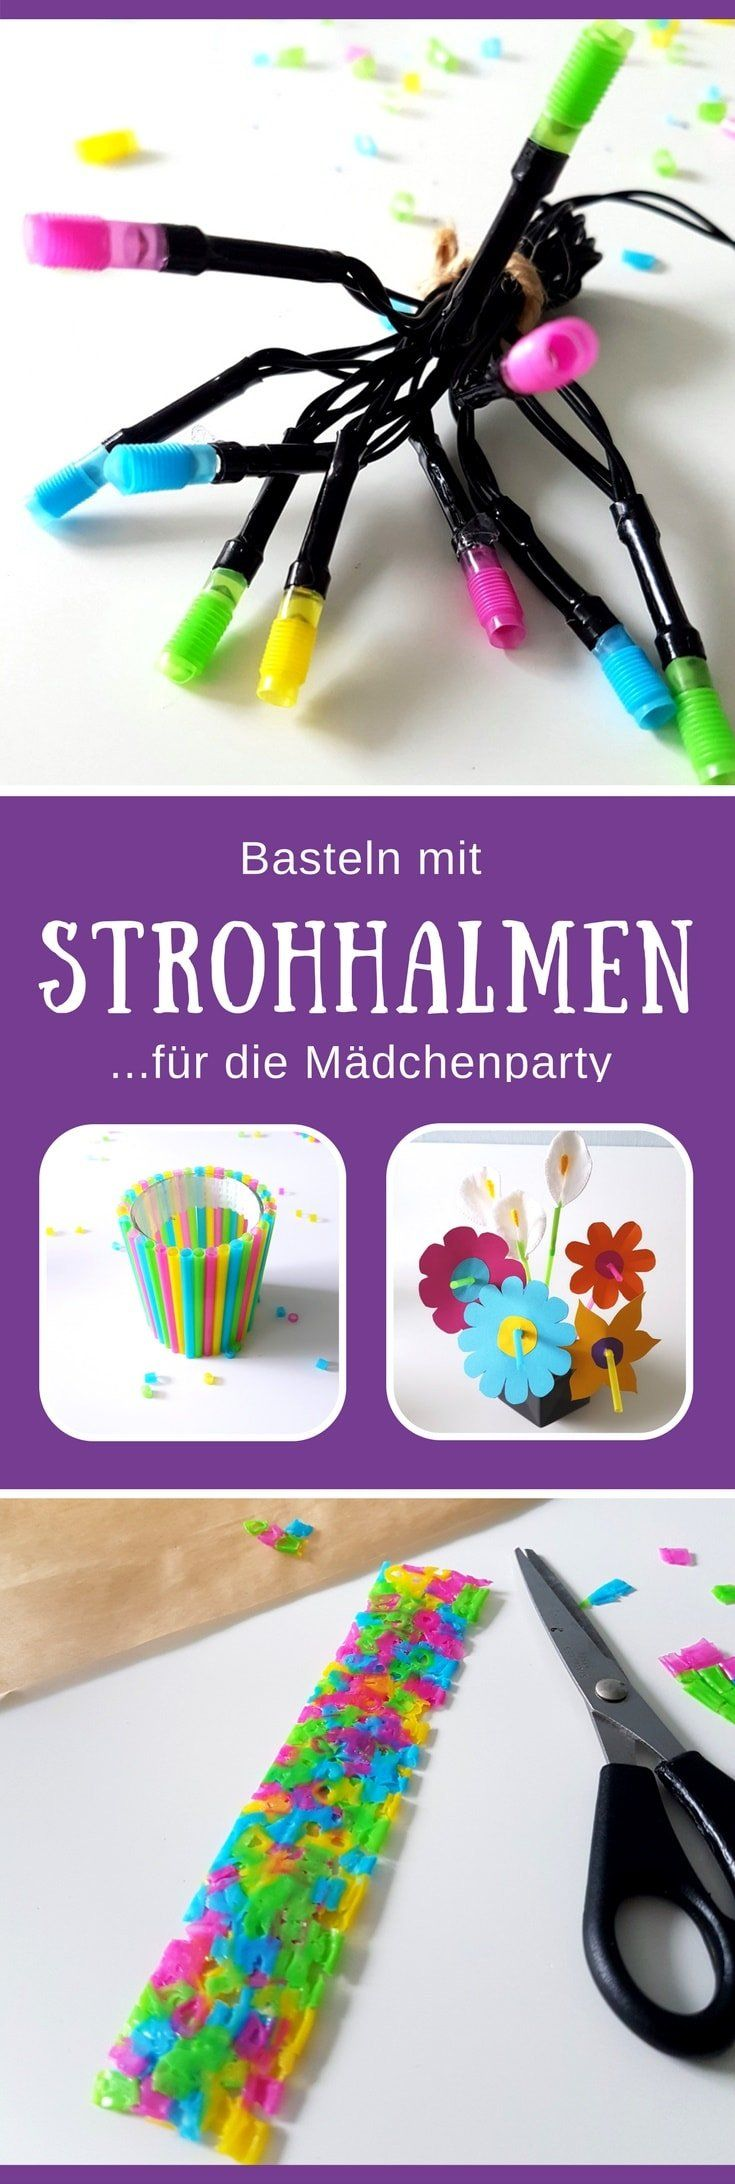 basteln mit strohhalmen 4 kreative ideen f r kinder freebie strohhalm bastelideen f r. Black Bedroom Furniture Sets. Home Design Ideas